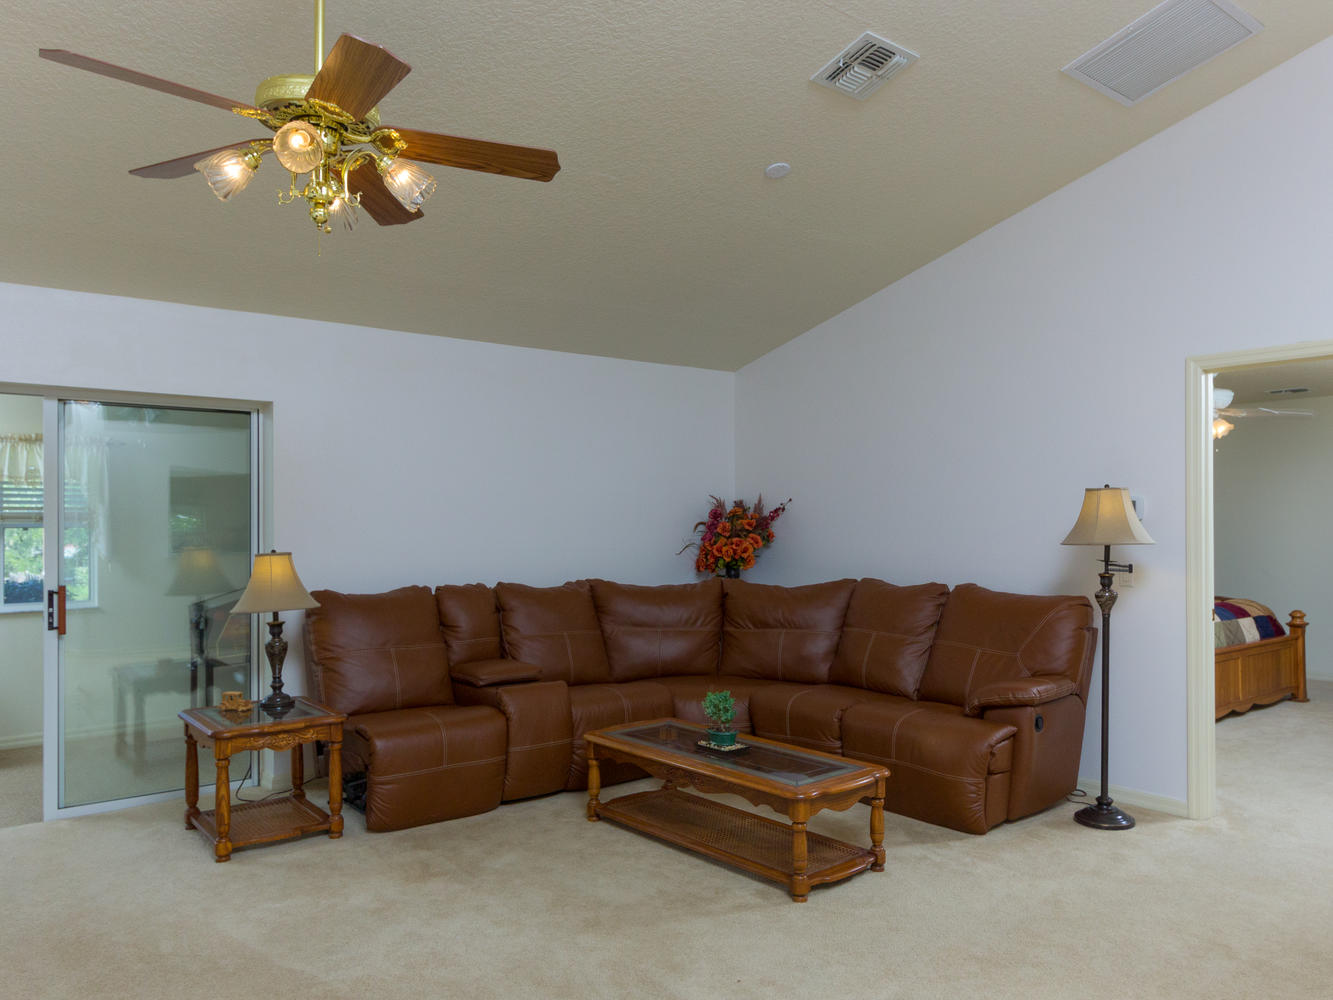 15660_SE_89th_Ct_Summerfield-large-004-14-Living_Room-1334x1000-72dpi